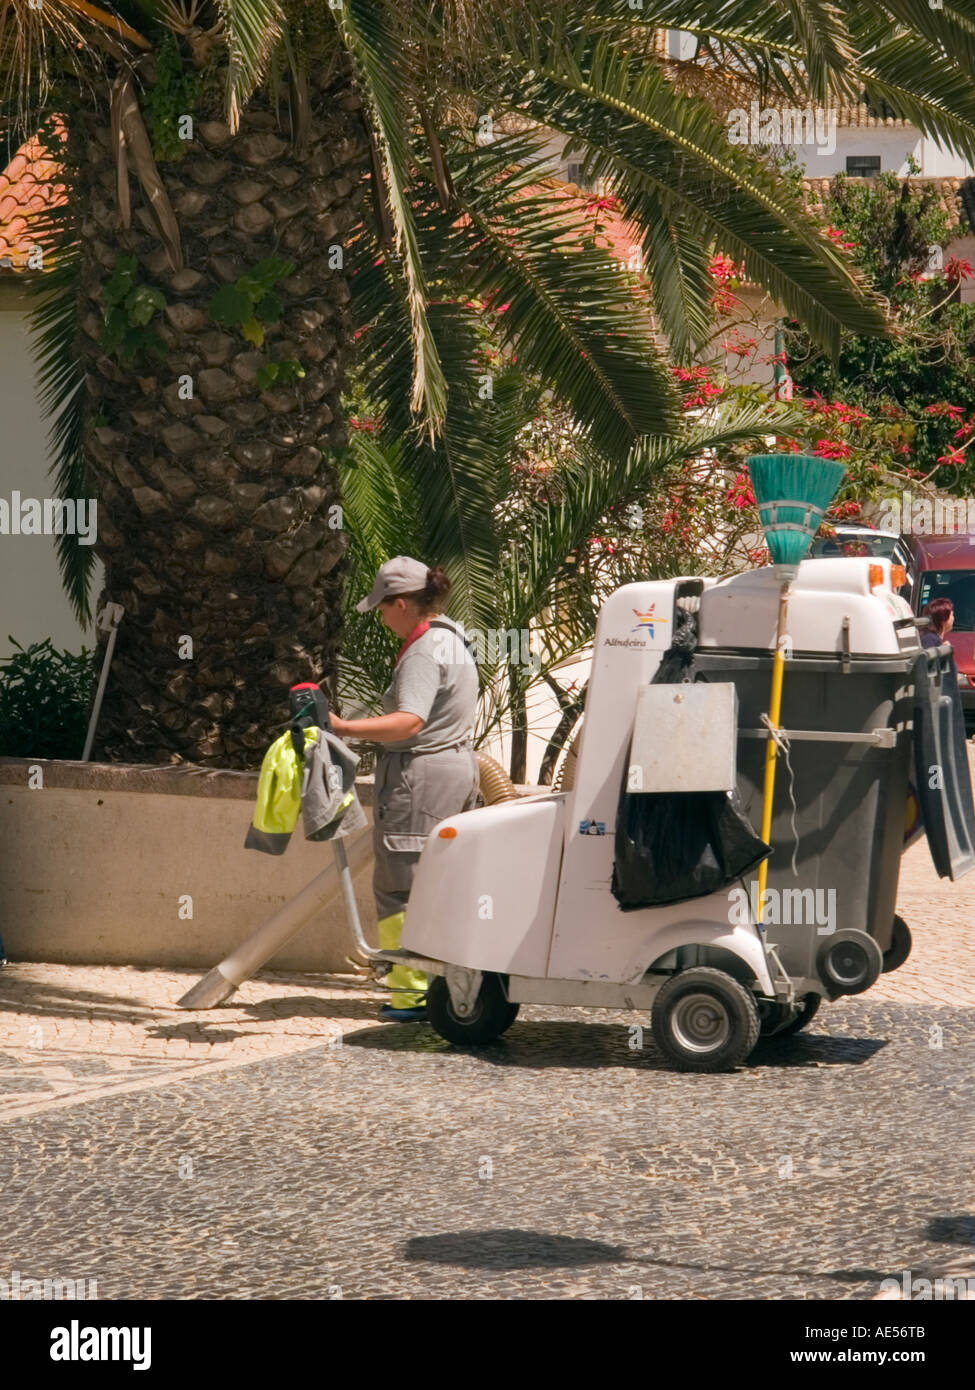 LADY STREET CLEANER with machine for vacuuming and collecting rubbish. - Stock Image